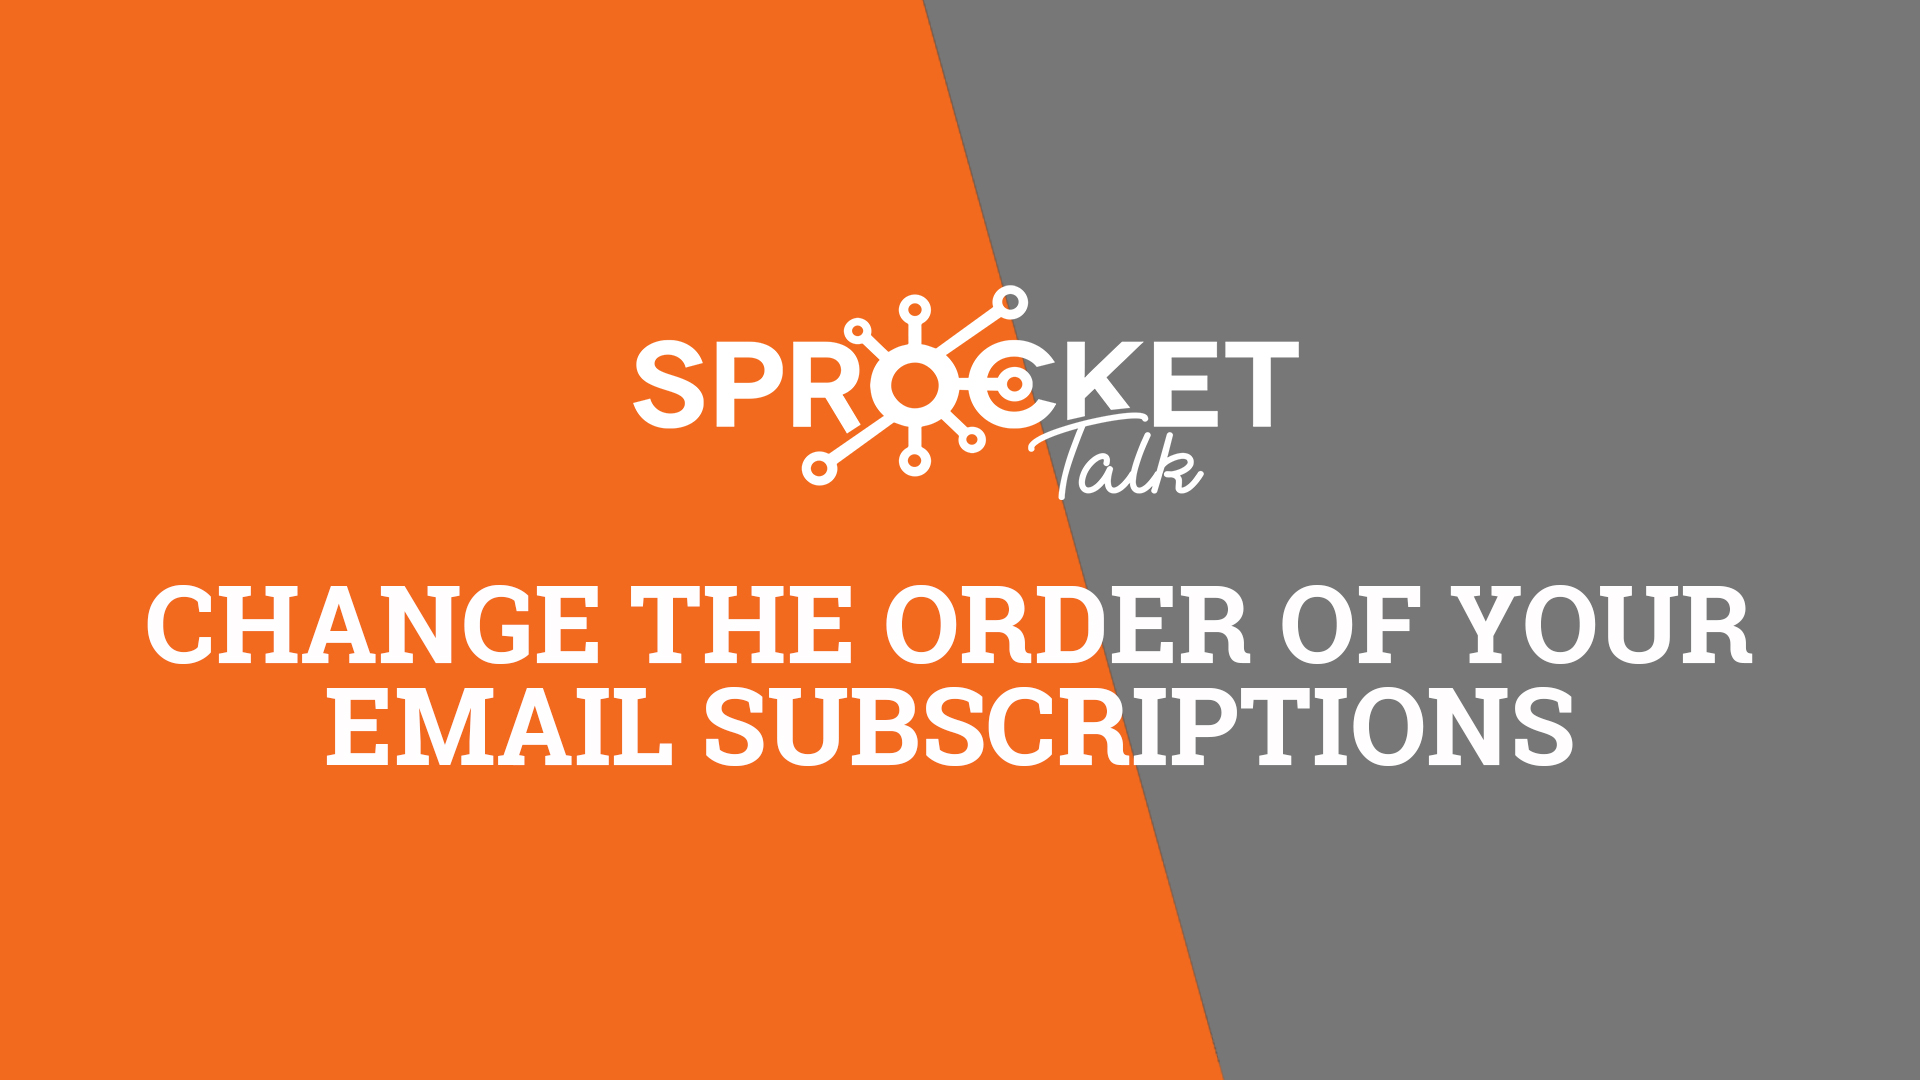 Change the Order of your Email Subscriptions